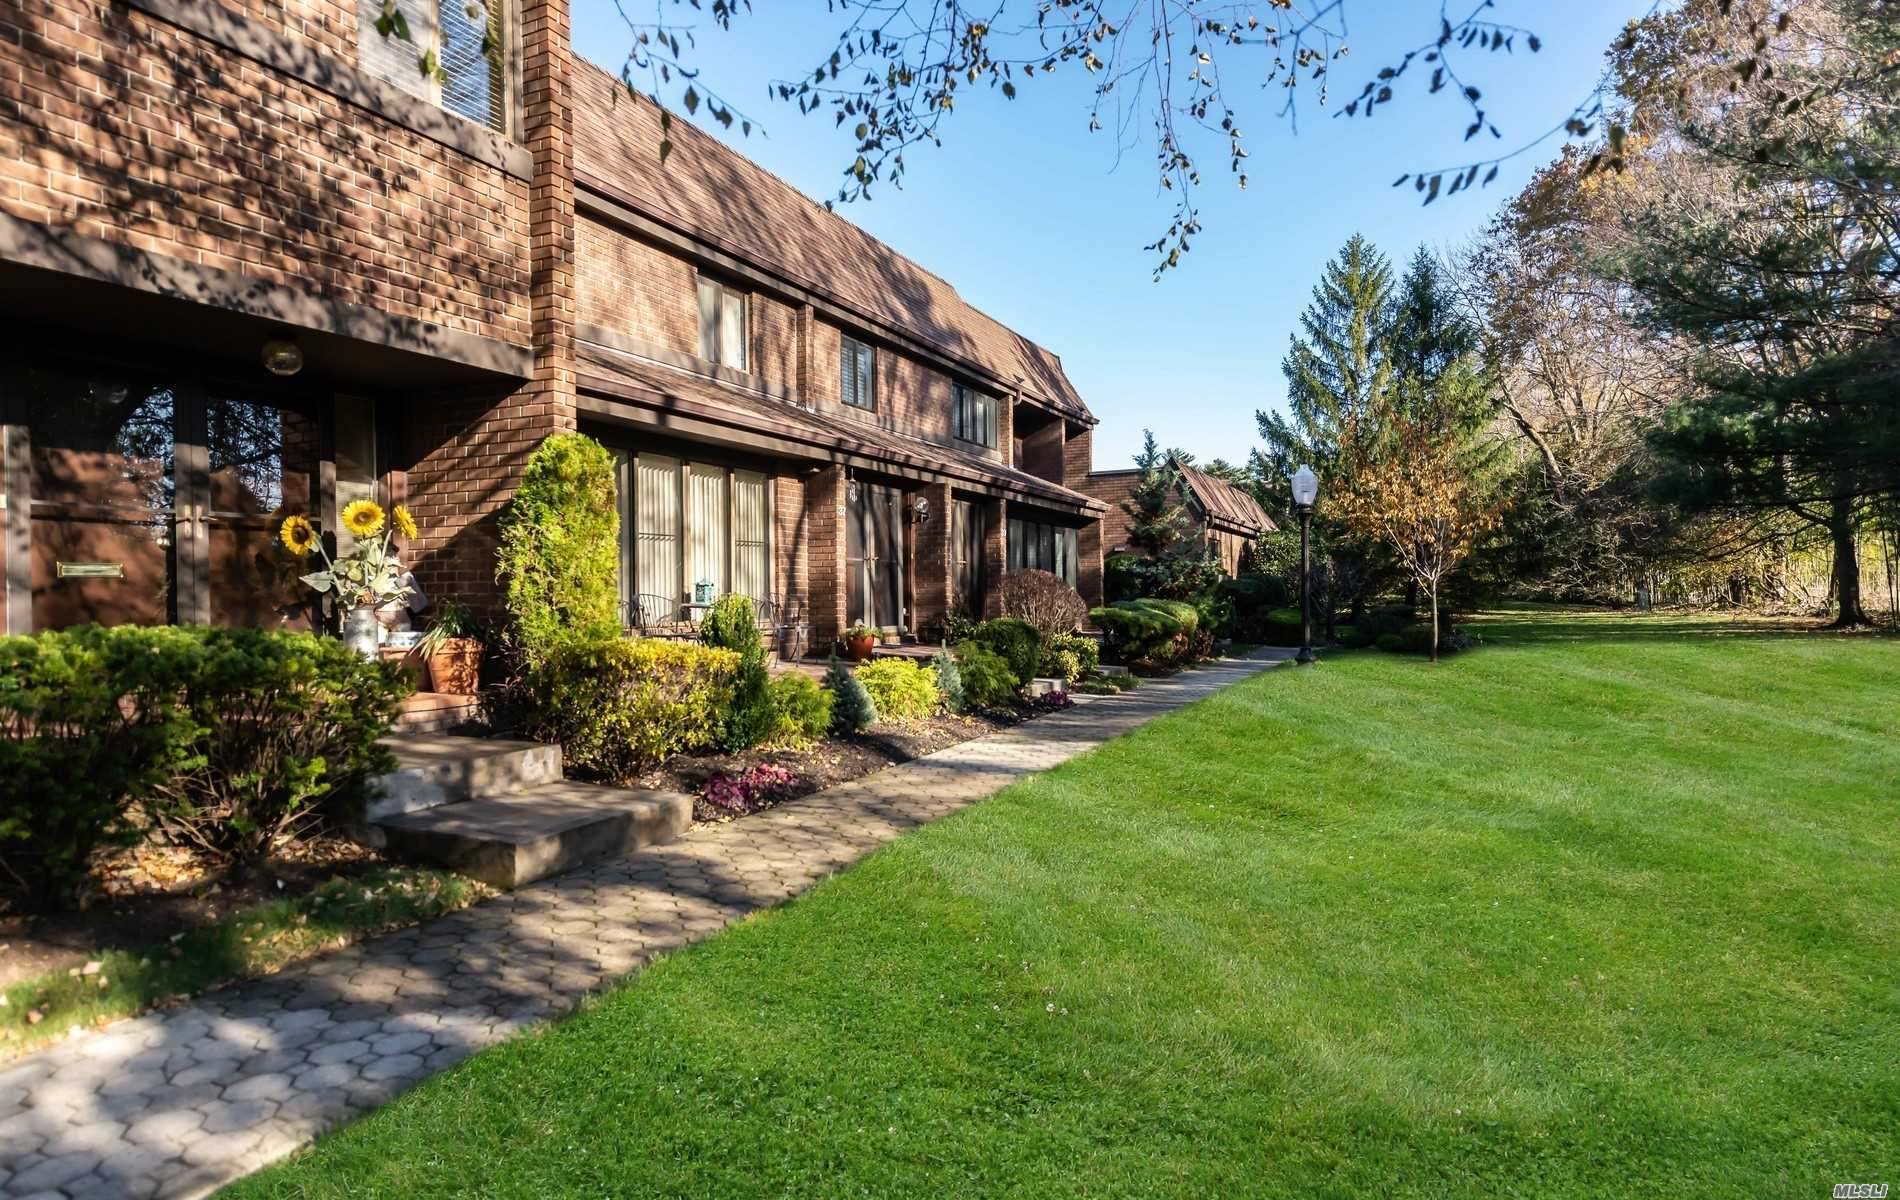 Serene, Sun Drenched, Gracious Dogwood Model is One of a Kind. Sited in a Premier, Picturesque Location Offering the Utmost Privacy. The Elegant Entryway Leads to an Expansive Open Concept Great Room, Ideal for Entertaining. High End Gourmet Kitchen w/Separate Cafe Area. Upstairs Boasts the Private Owners Master Suite w/Lavish Bath Plus Den and Additional Roomy Bedroom. So Many Recent Upgrades! Prime Amenities and Easy Living Await You. End Unit!